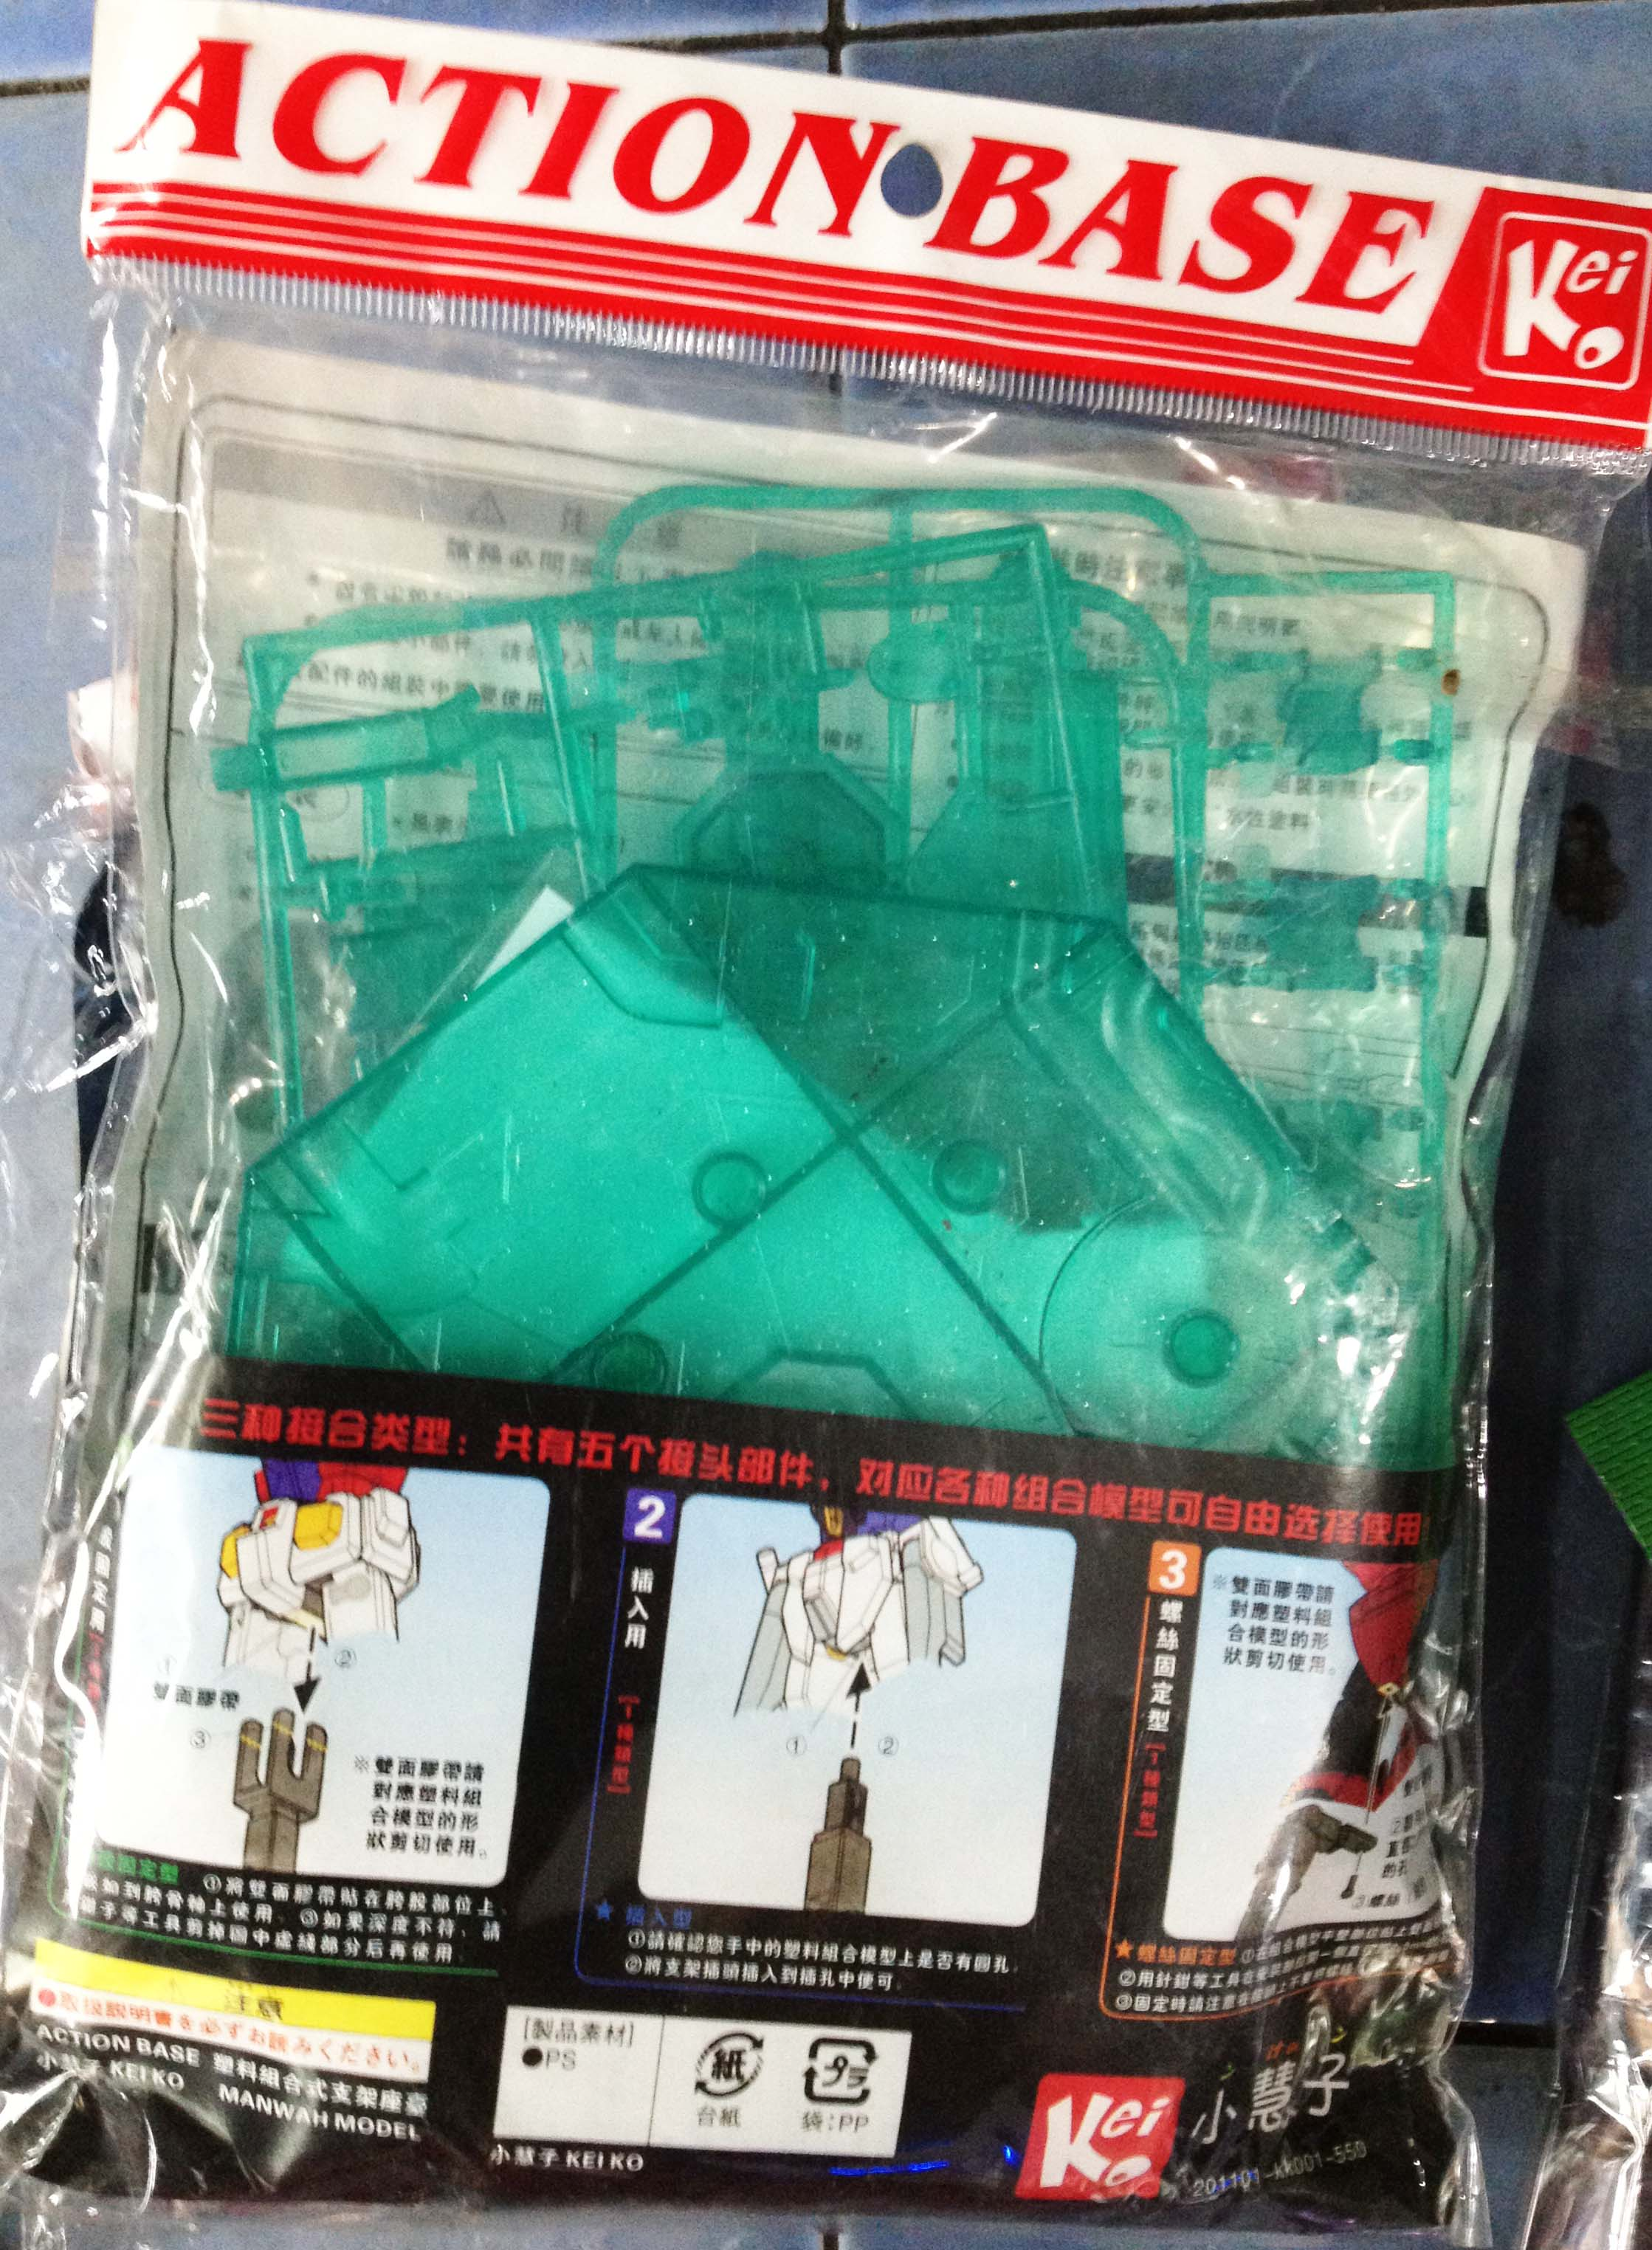 1/100 Action Base (Clear Green) [KeiKo]